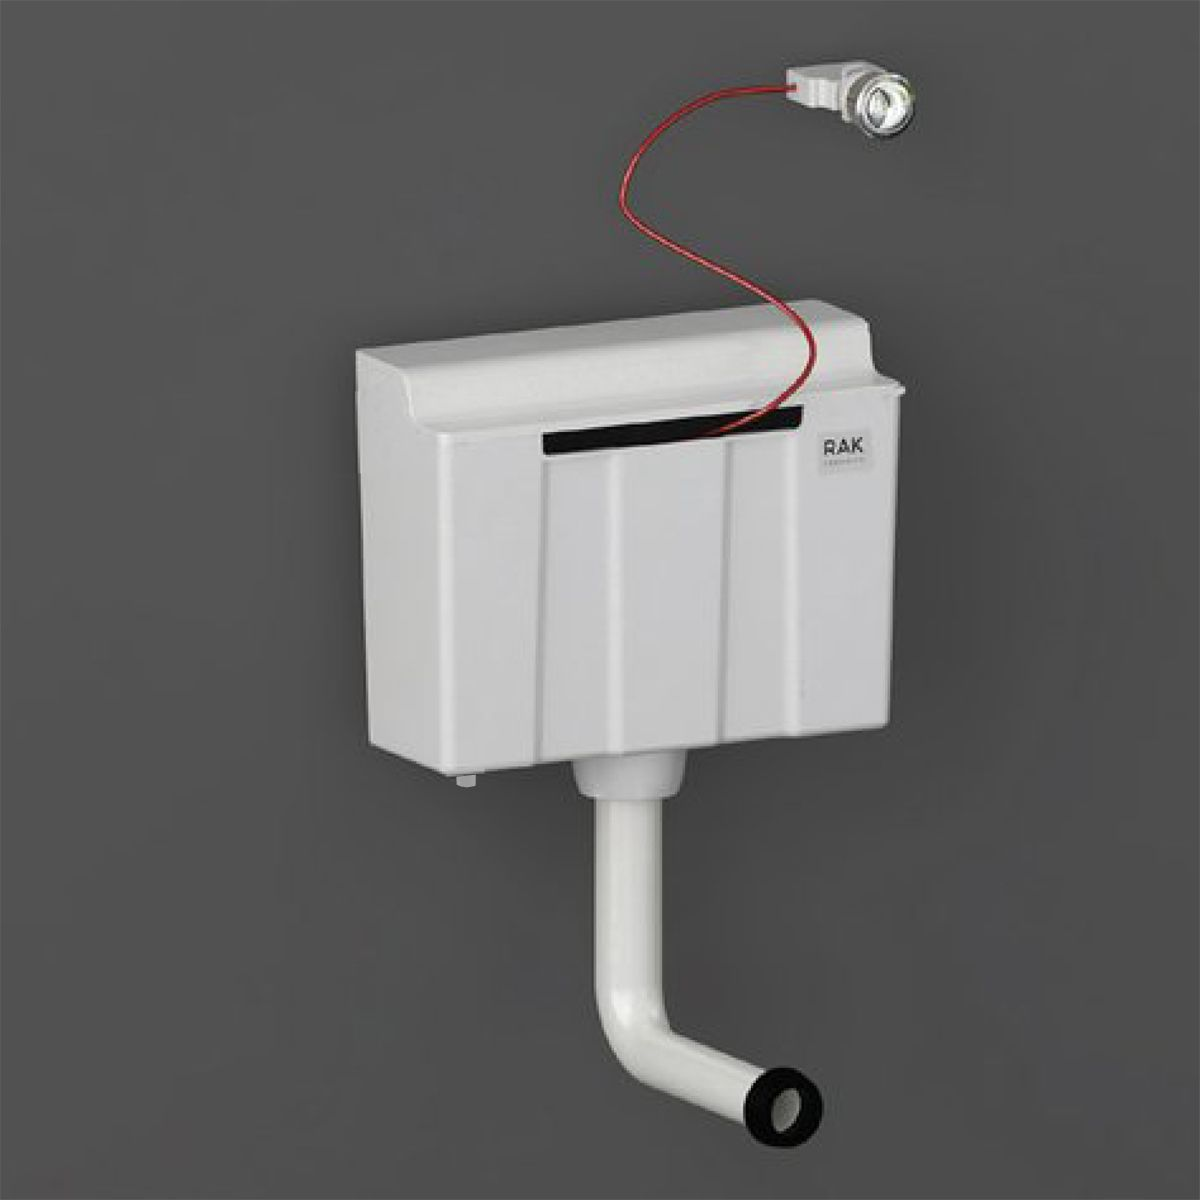 RAK Ecofix Bottom Inlet Concealed Cistern with Push Button